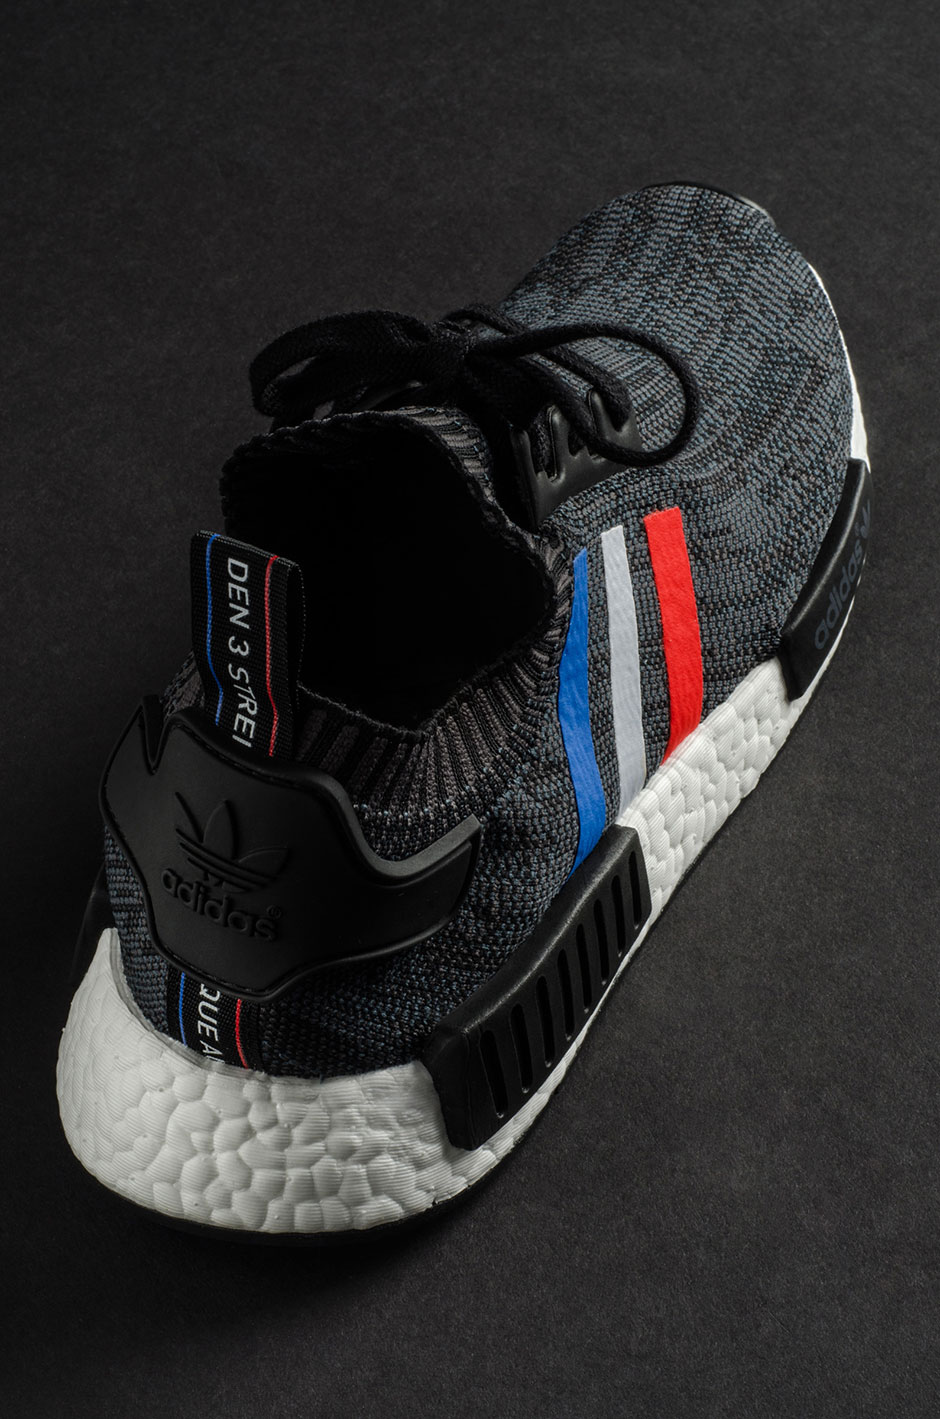 """bfb206a8978a8 adidas NMD R1 Primeknit """"Tri-color"""" Pack"""